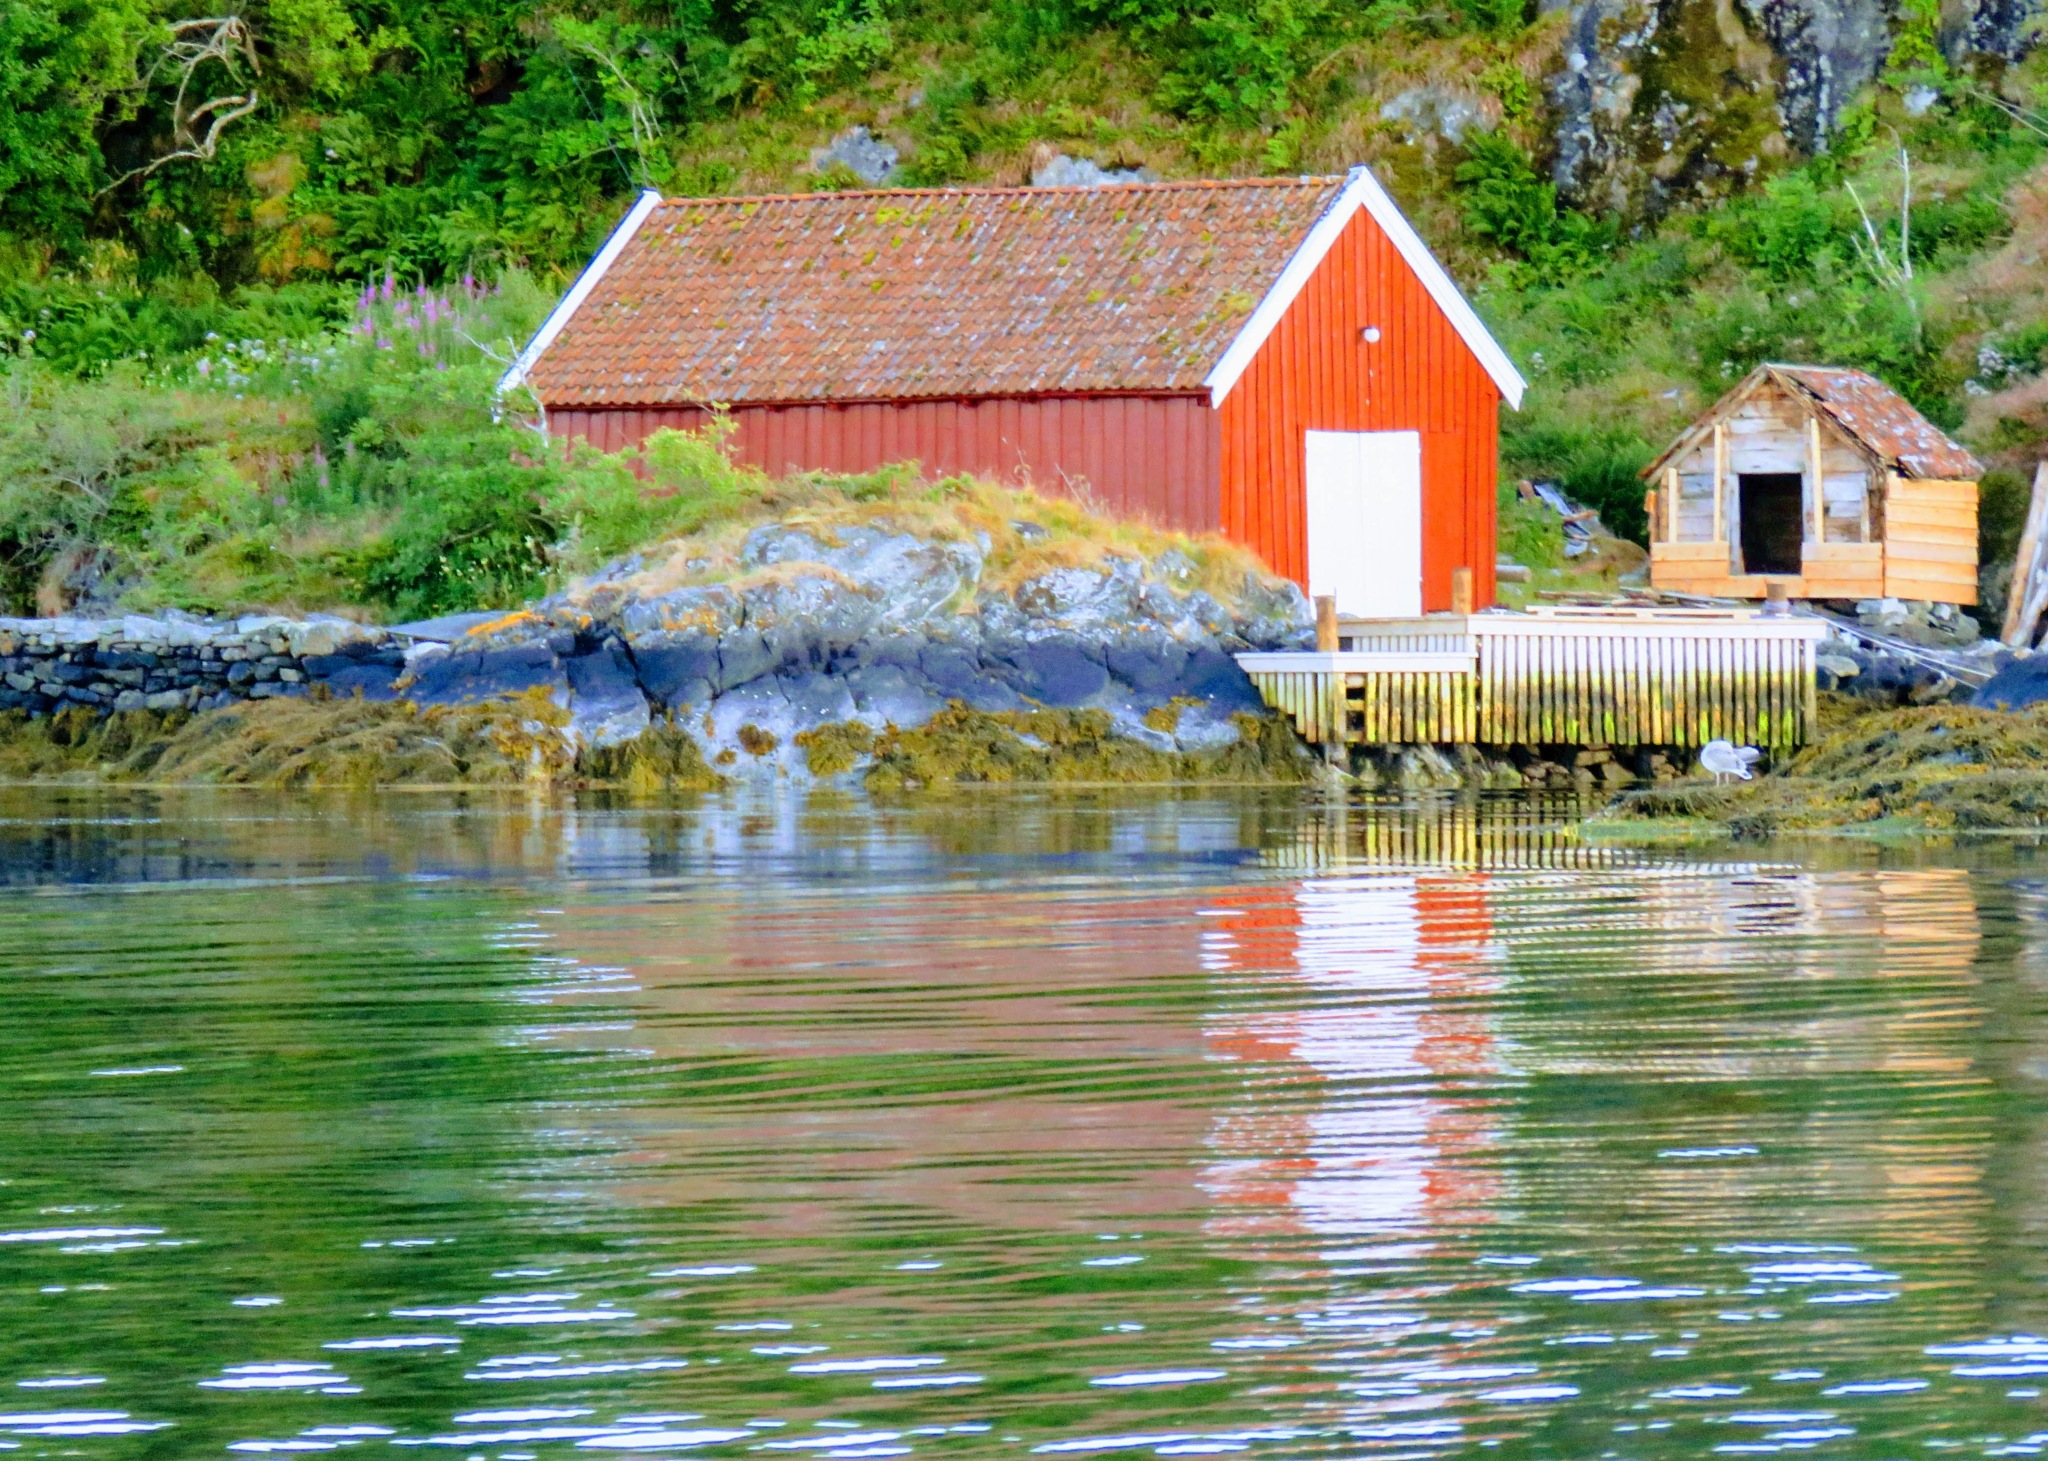 #Boathouses by marit